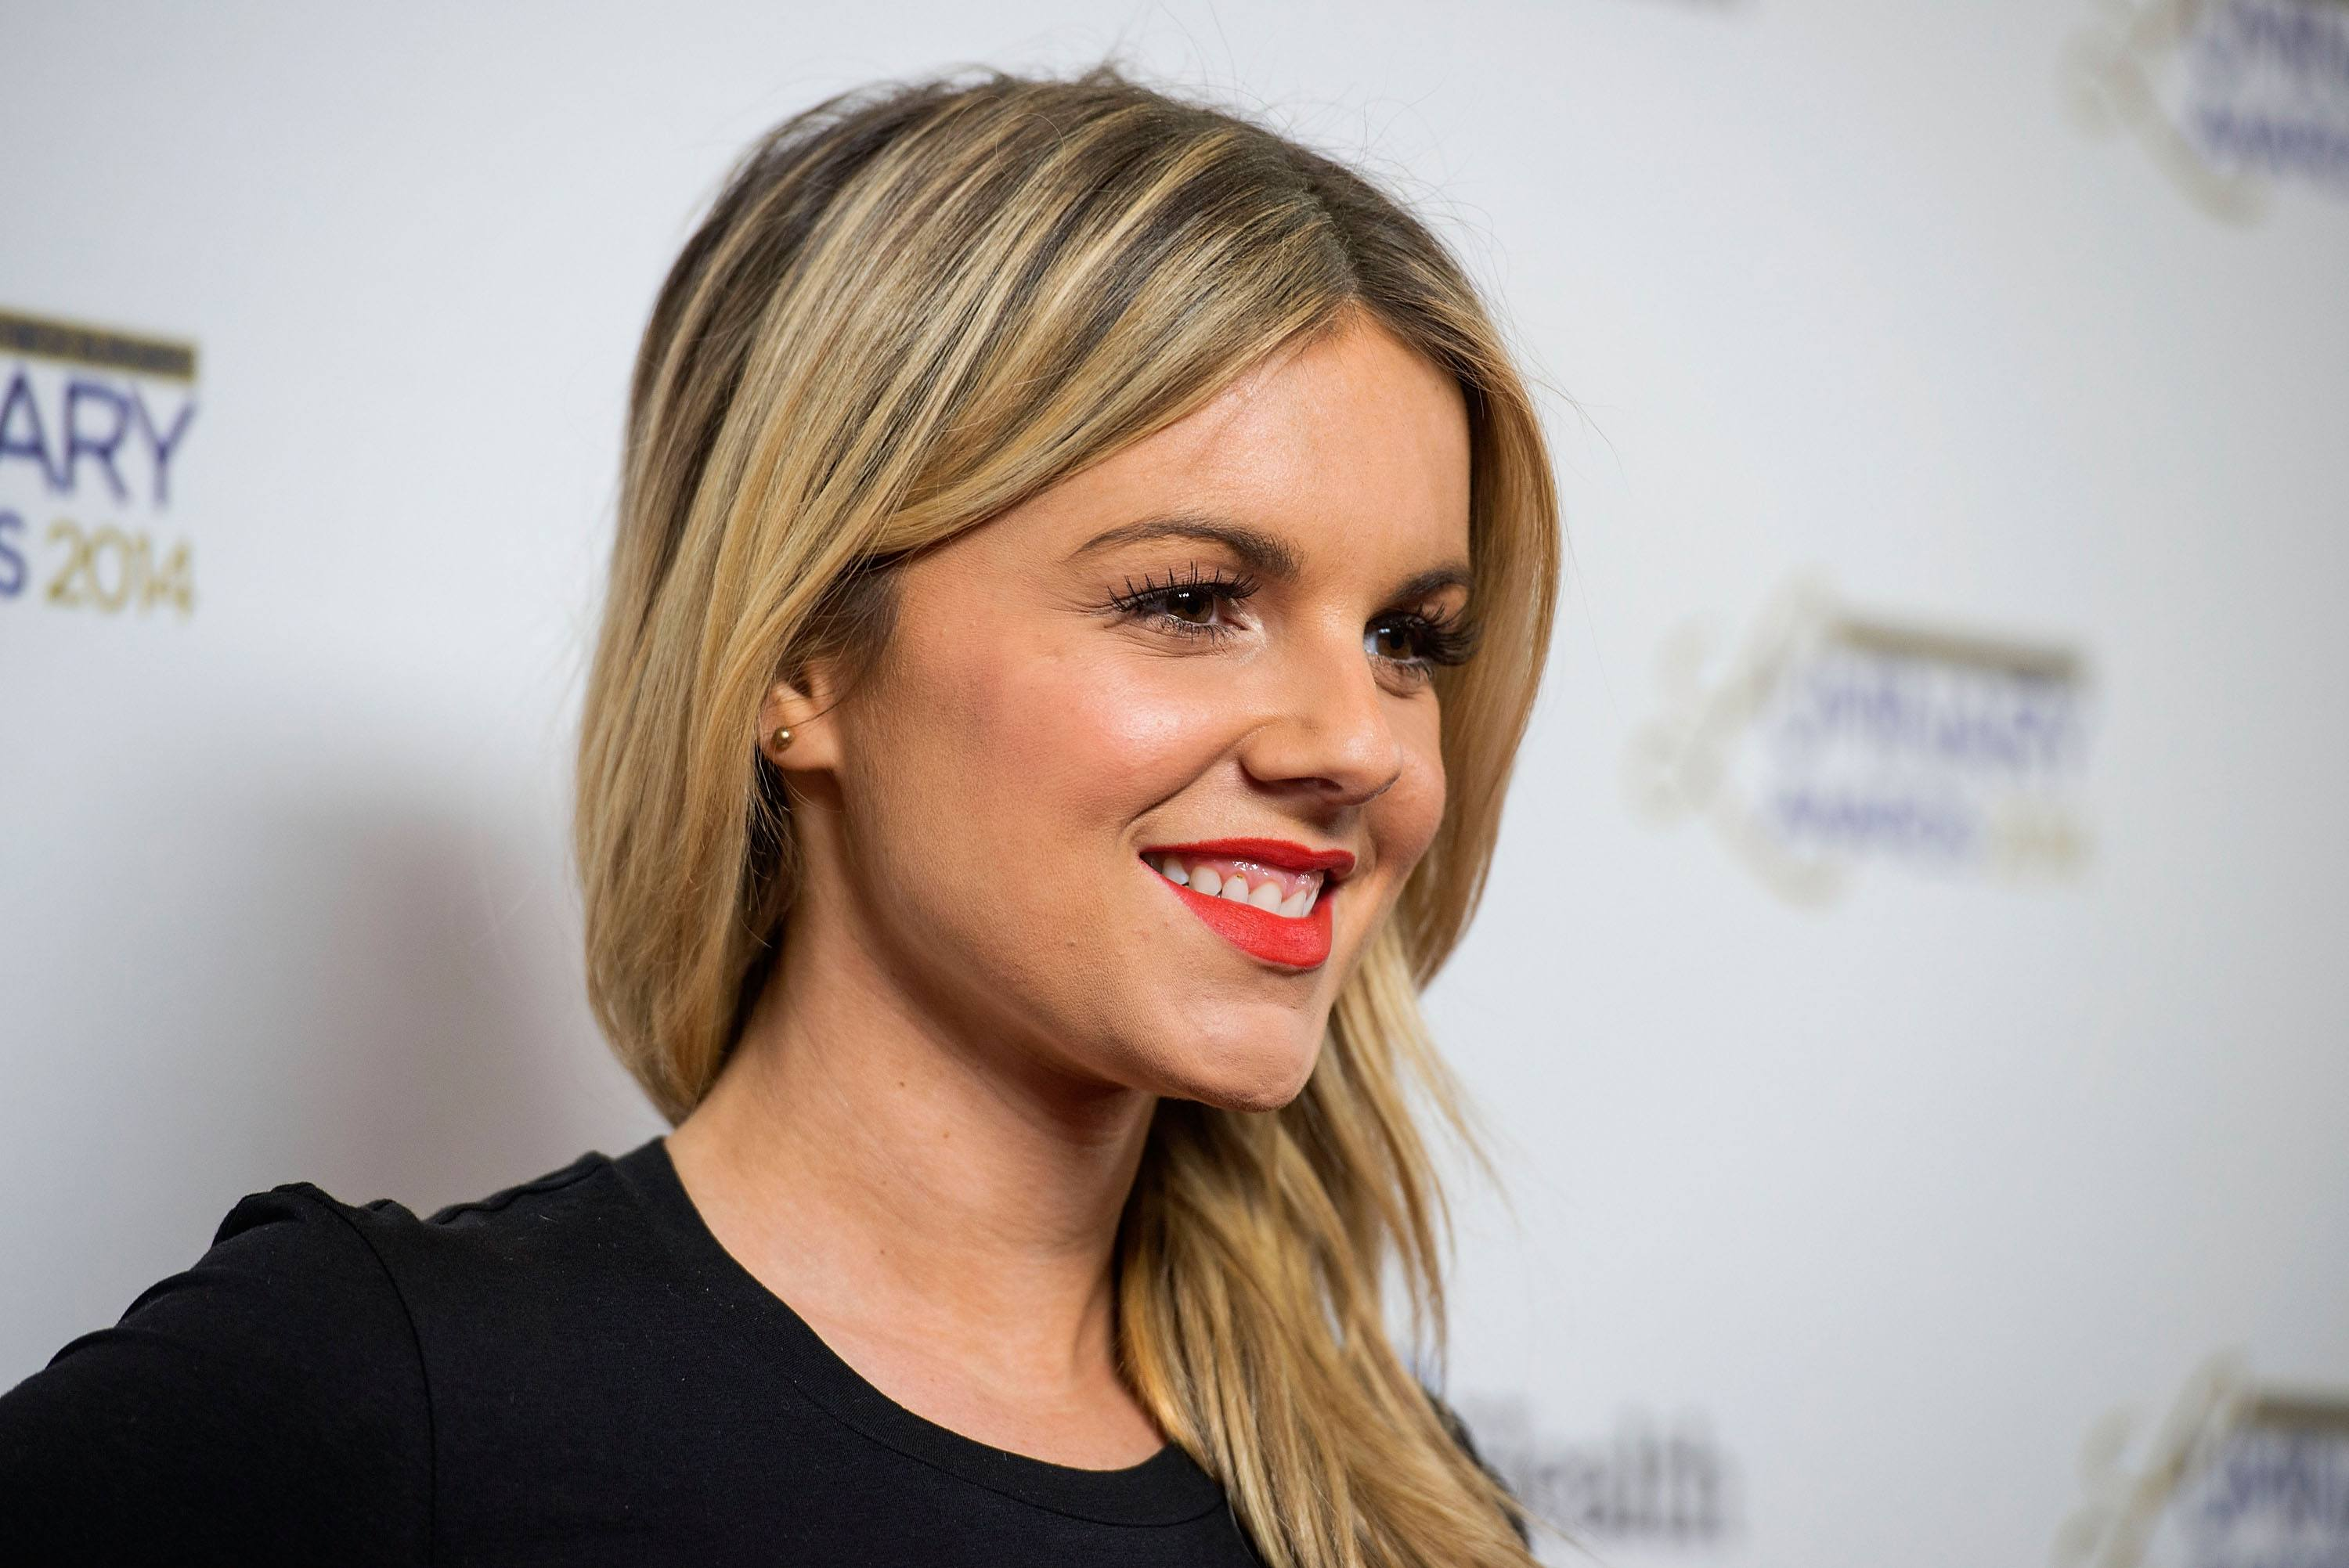 Ali Fedotowsky from the Bachelorette